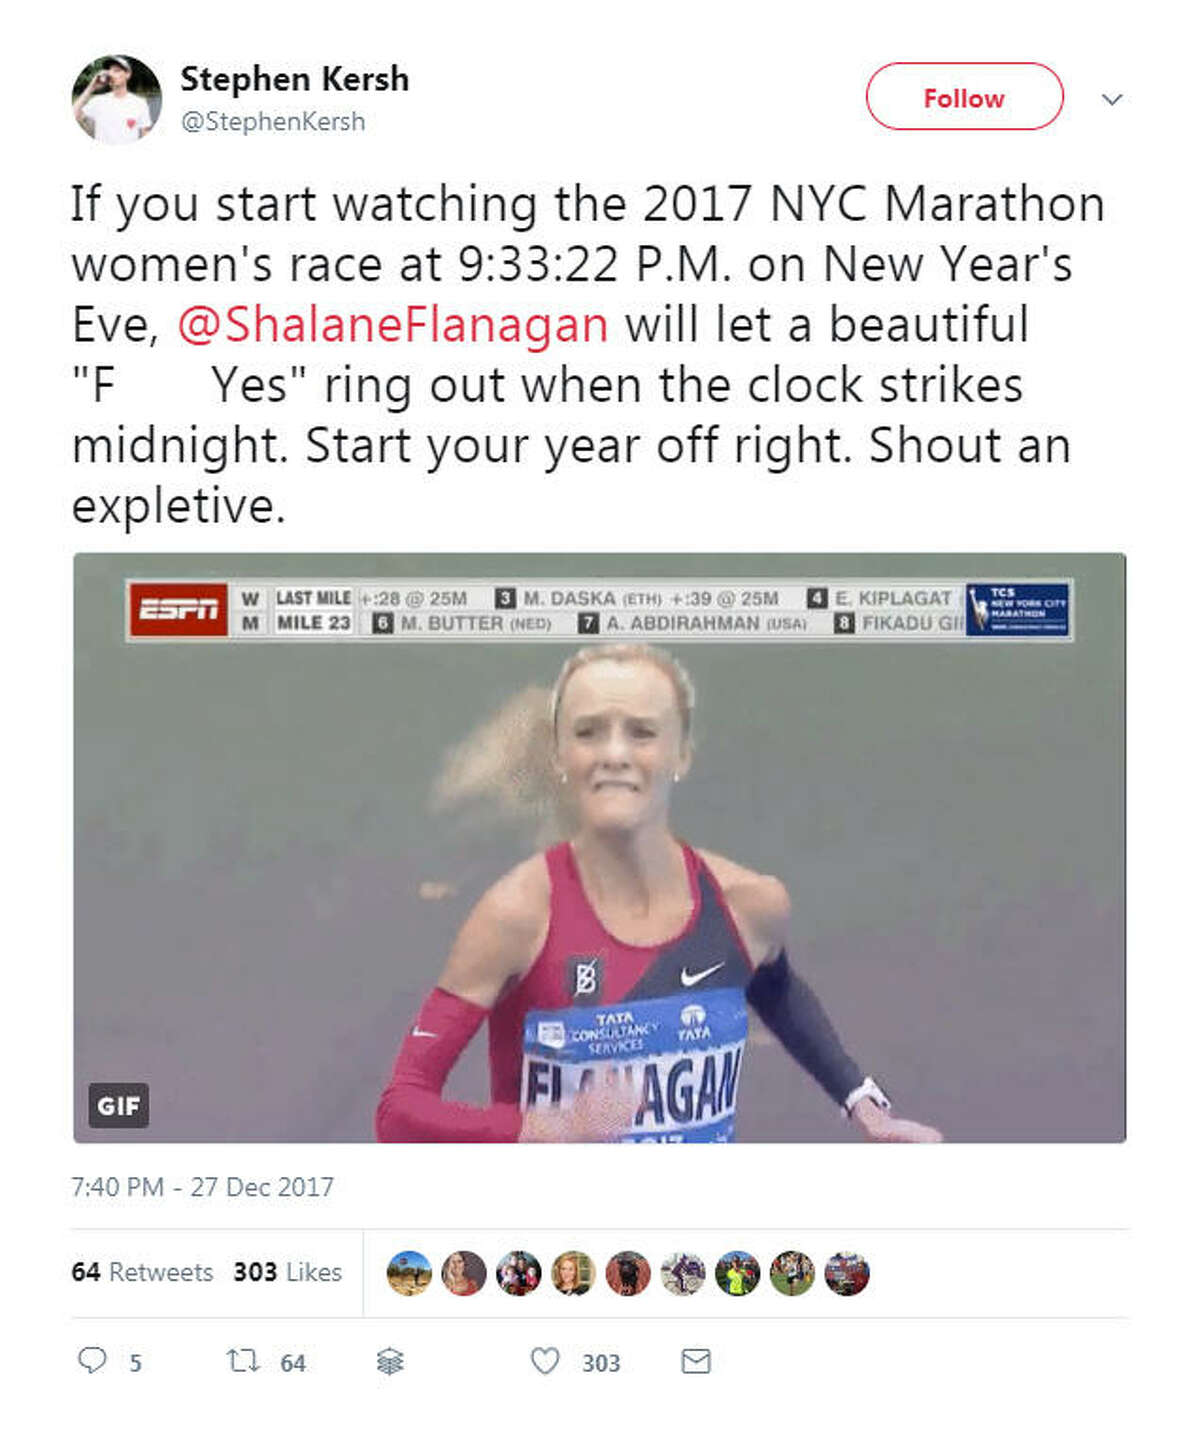 """""""If you start watching the 2017 NYC Marathon women's race at 9:33:22 P.M. on New Year's Eve, @ShalaneFlanagan will let a beautiful 'F*** Yes' ring out when the clock strikes midnight. Start your year off right. Shout an expletive."""" Source: Twitter"""